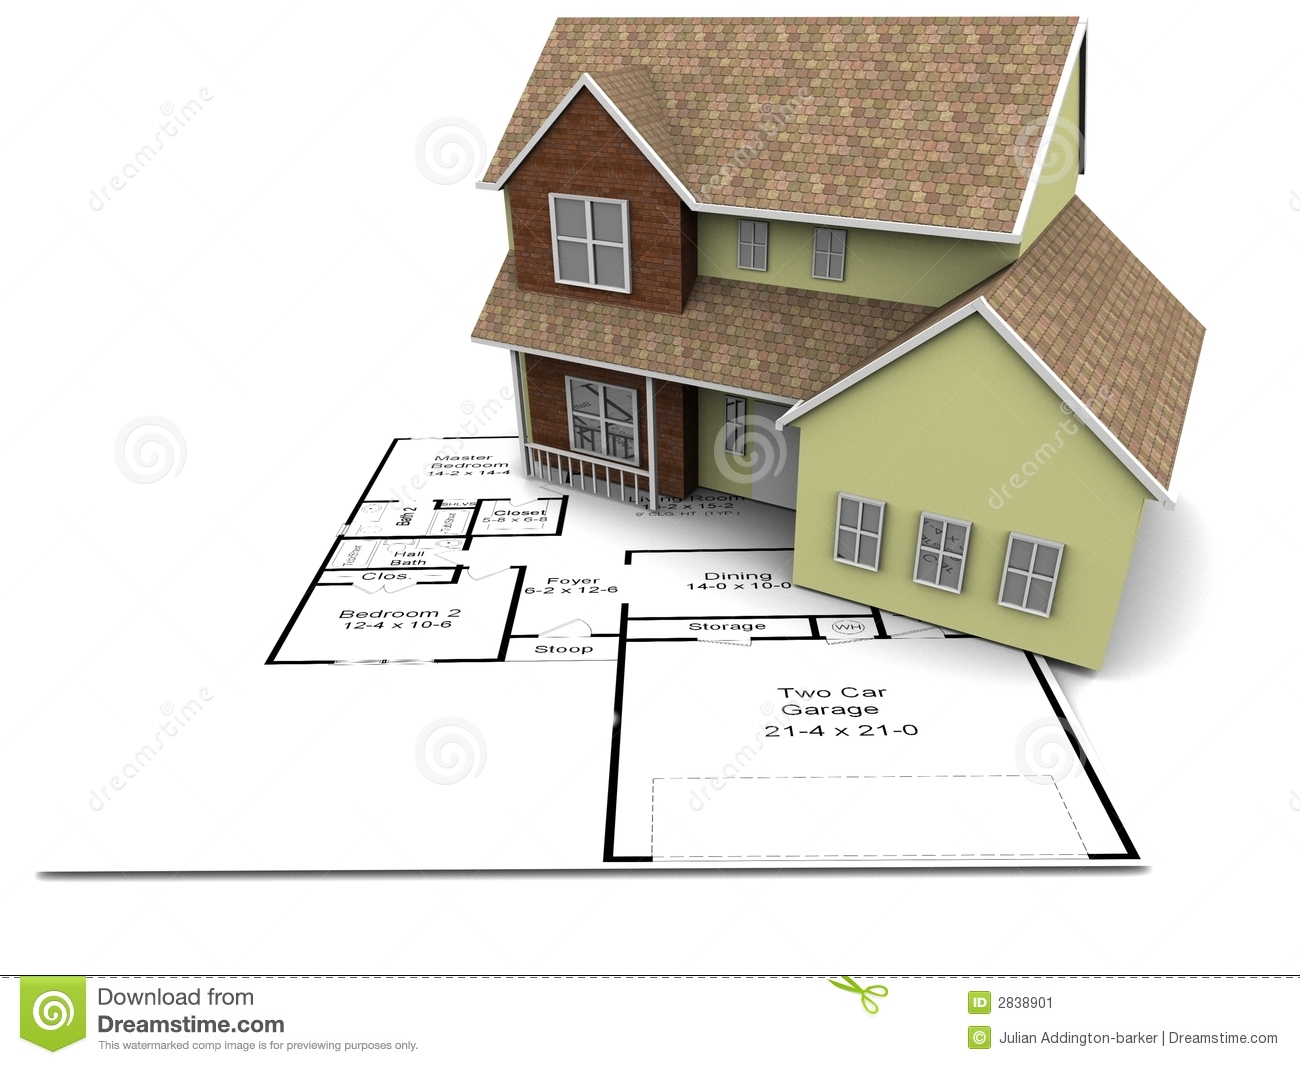 New house plans stock illustration illustration of house for New home plans